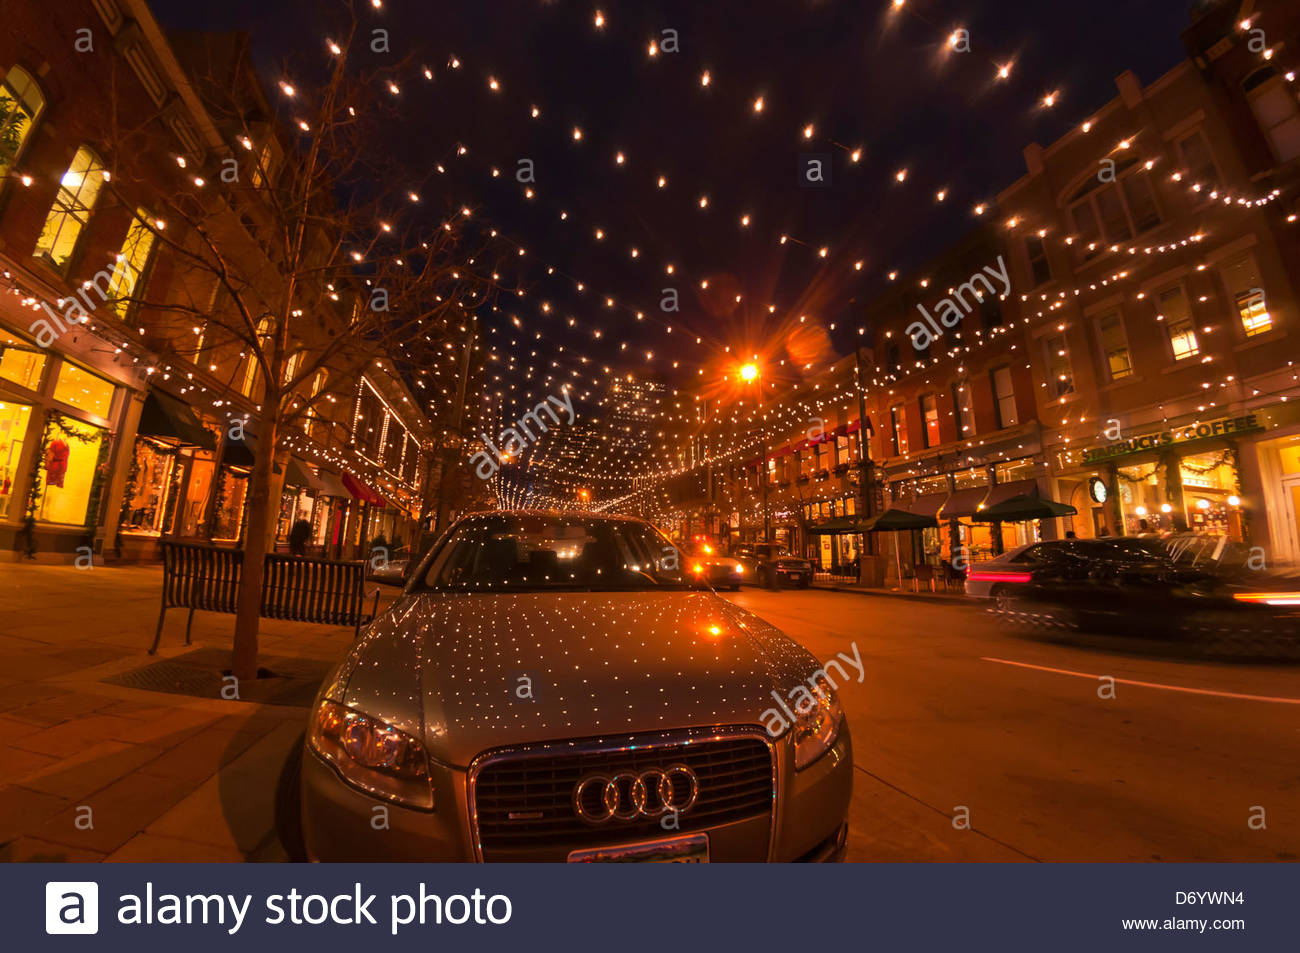 Larimer Square In Downtown Denver Illuminated For The Holiday Season Stock Photo Royalty Free